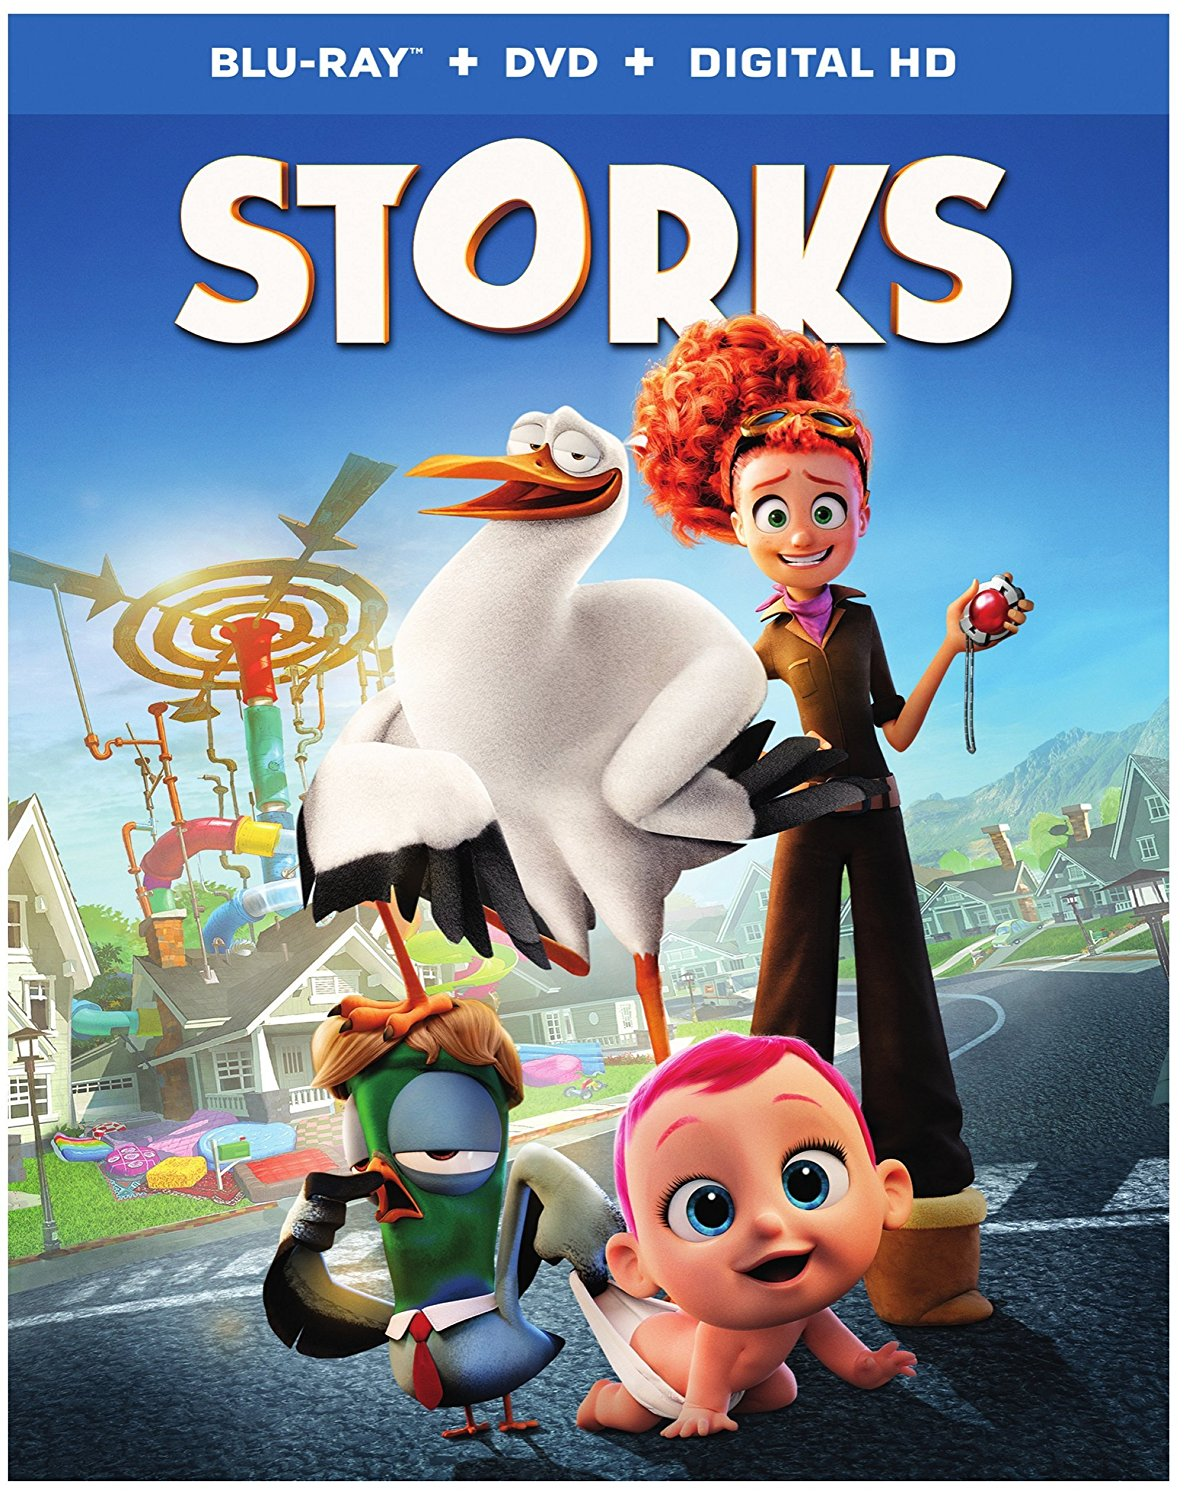 Storks A Wacky Adventure About Babies And Birds Blu Ray Review Celebrity Gossip Movie News